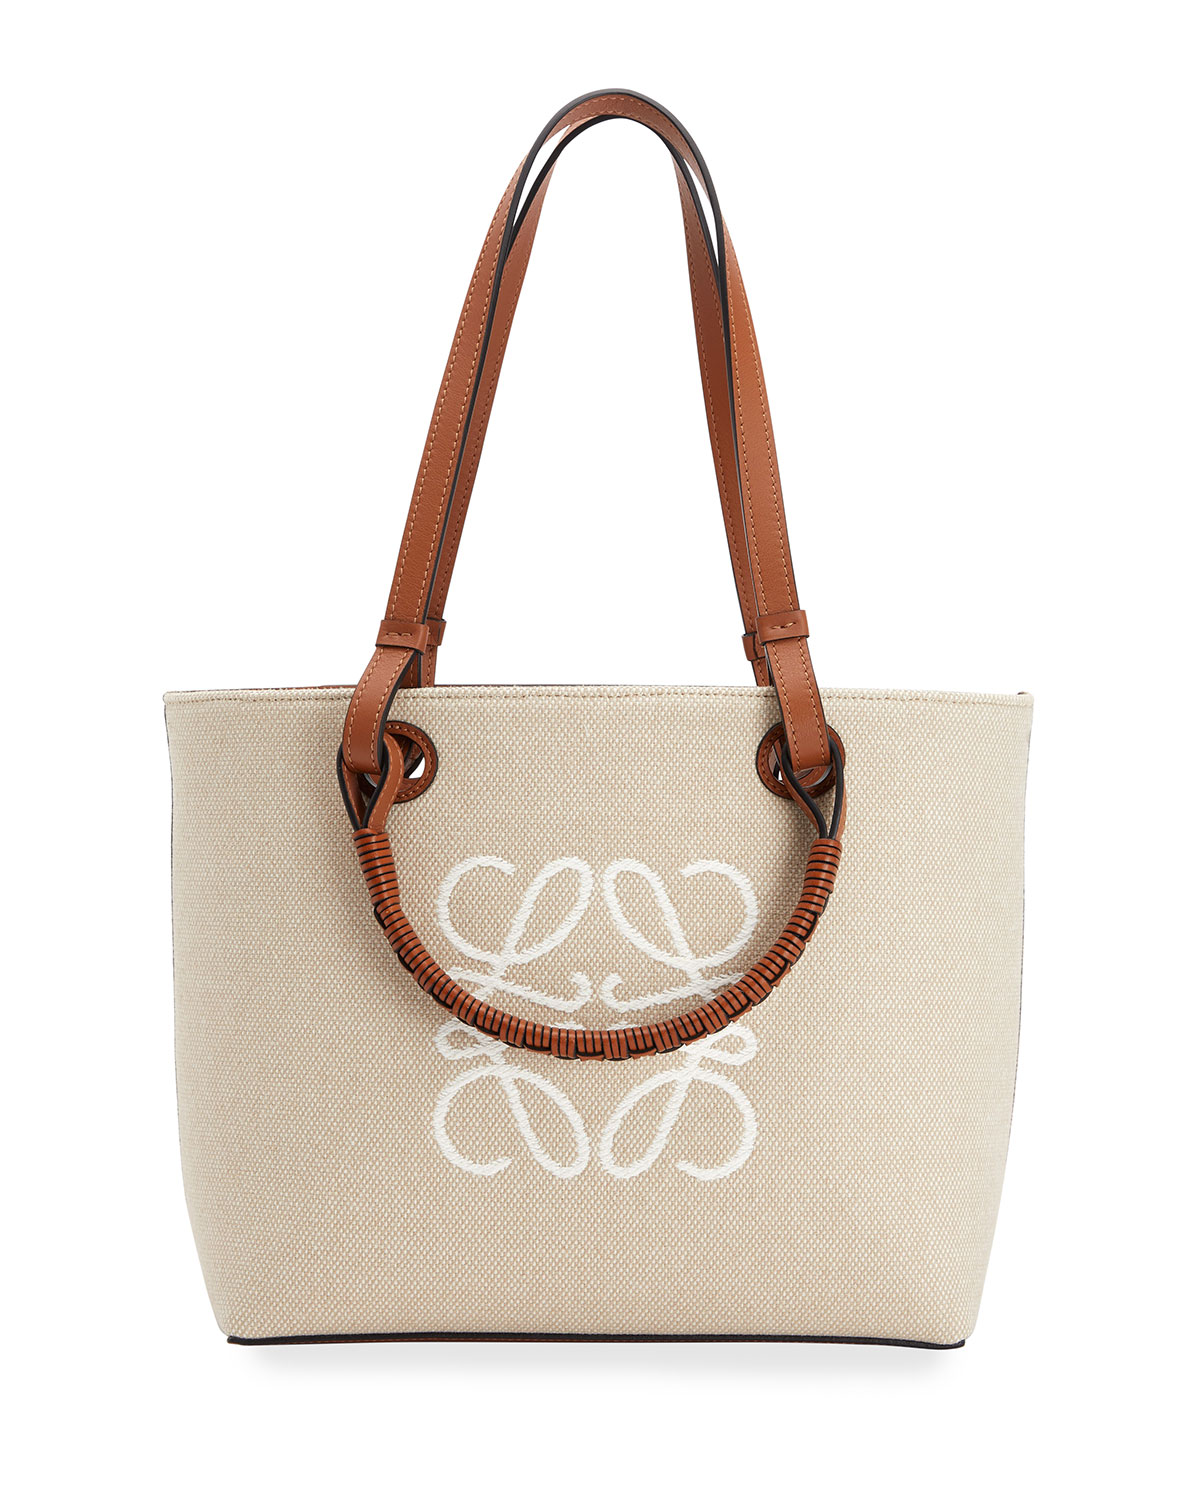 Loewe Leathers ANAGRAM SMALL CANVAS TOTE BAG